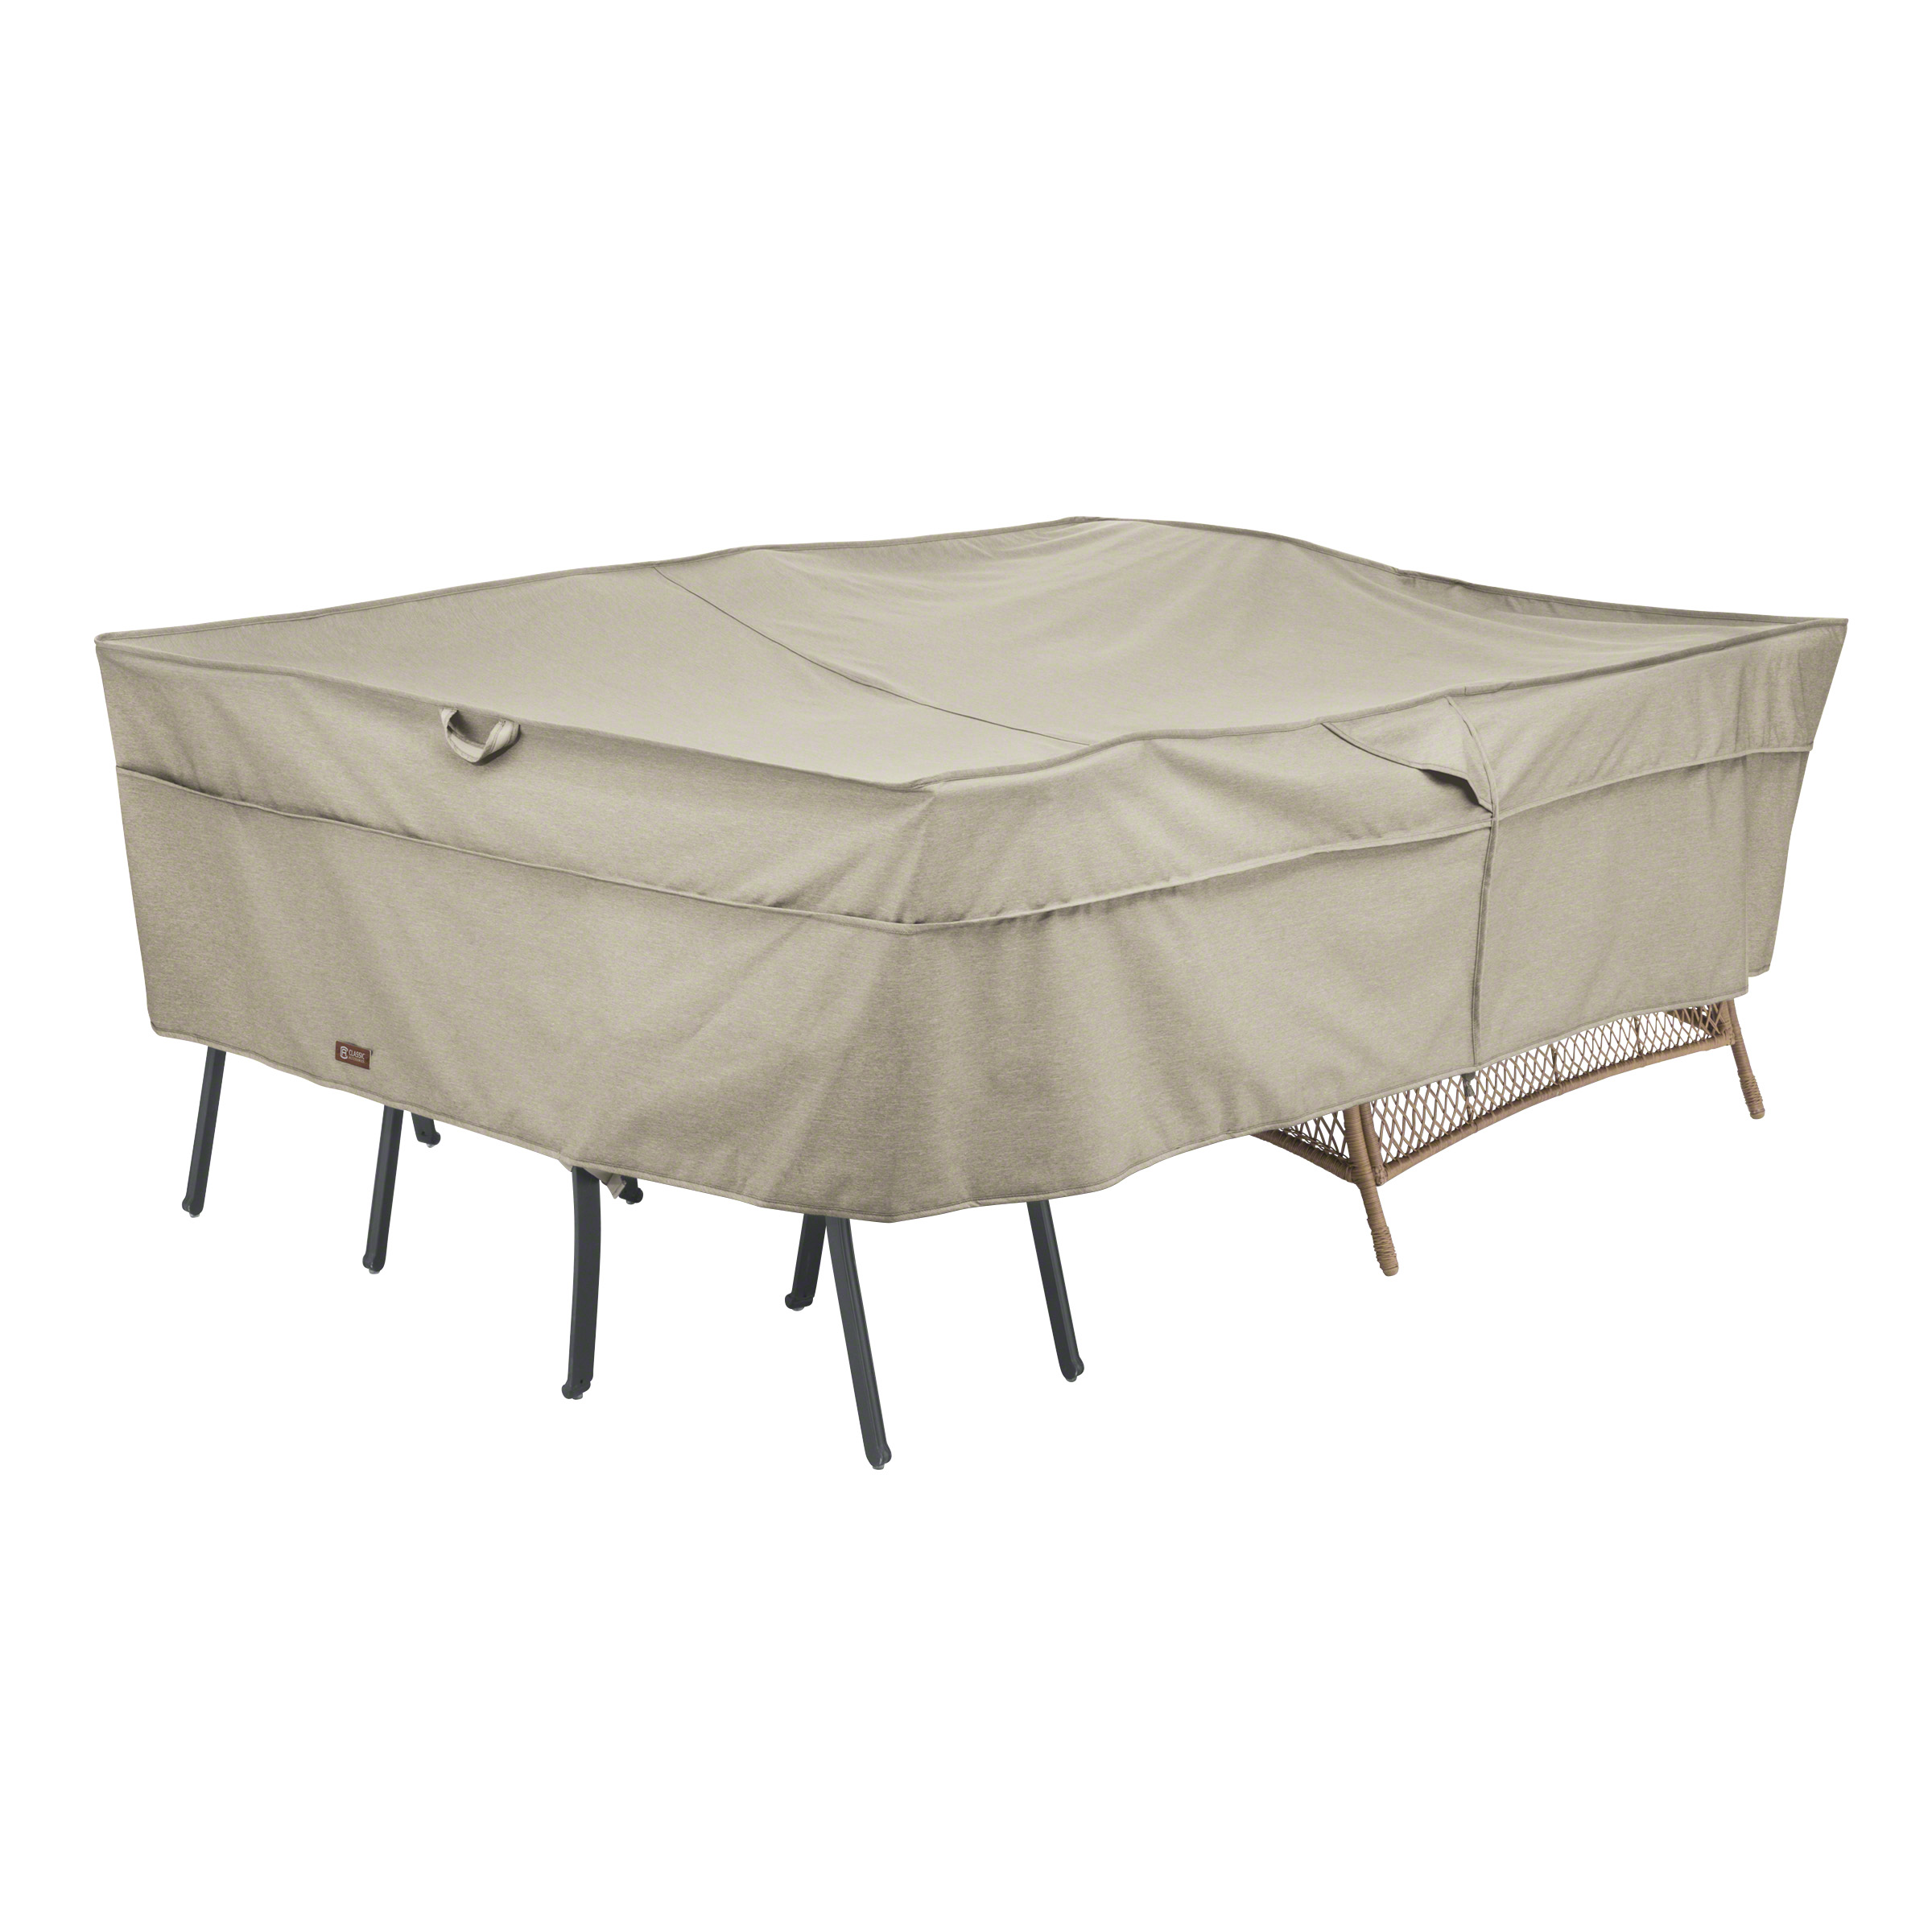 Classic Accessories Montlake FadeSafe Conversation Set Furniture Group Cover Heavy Duty... by Classic Accessories